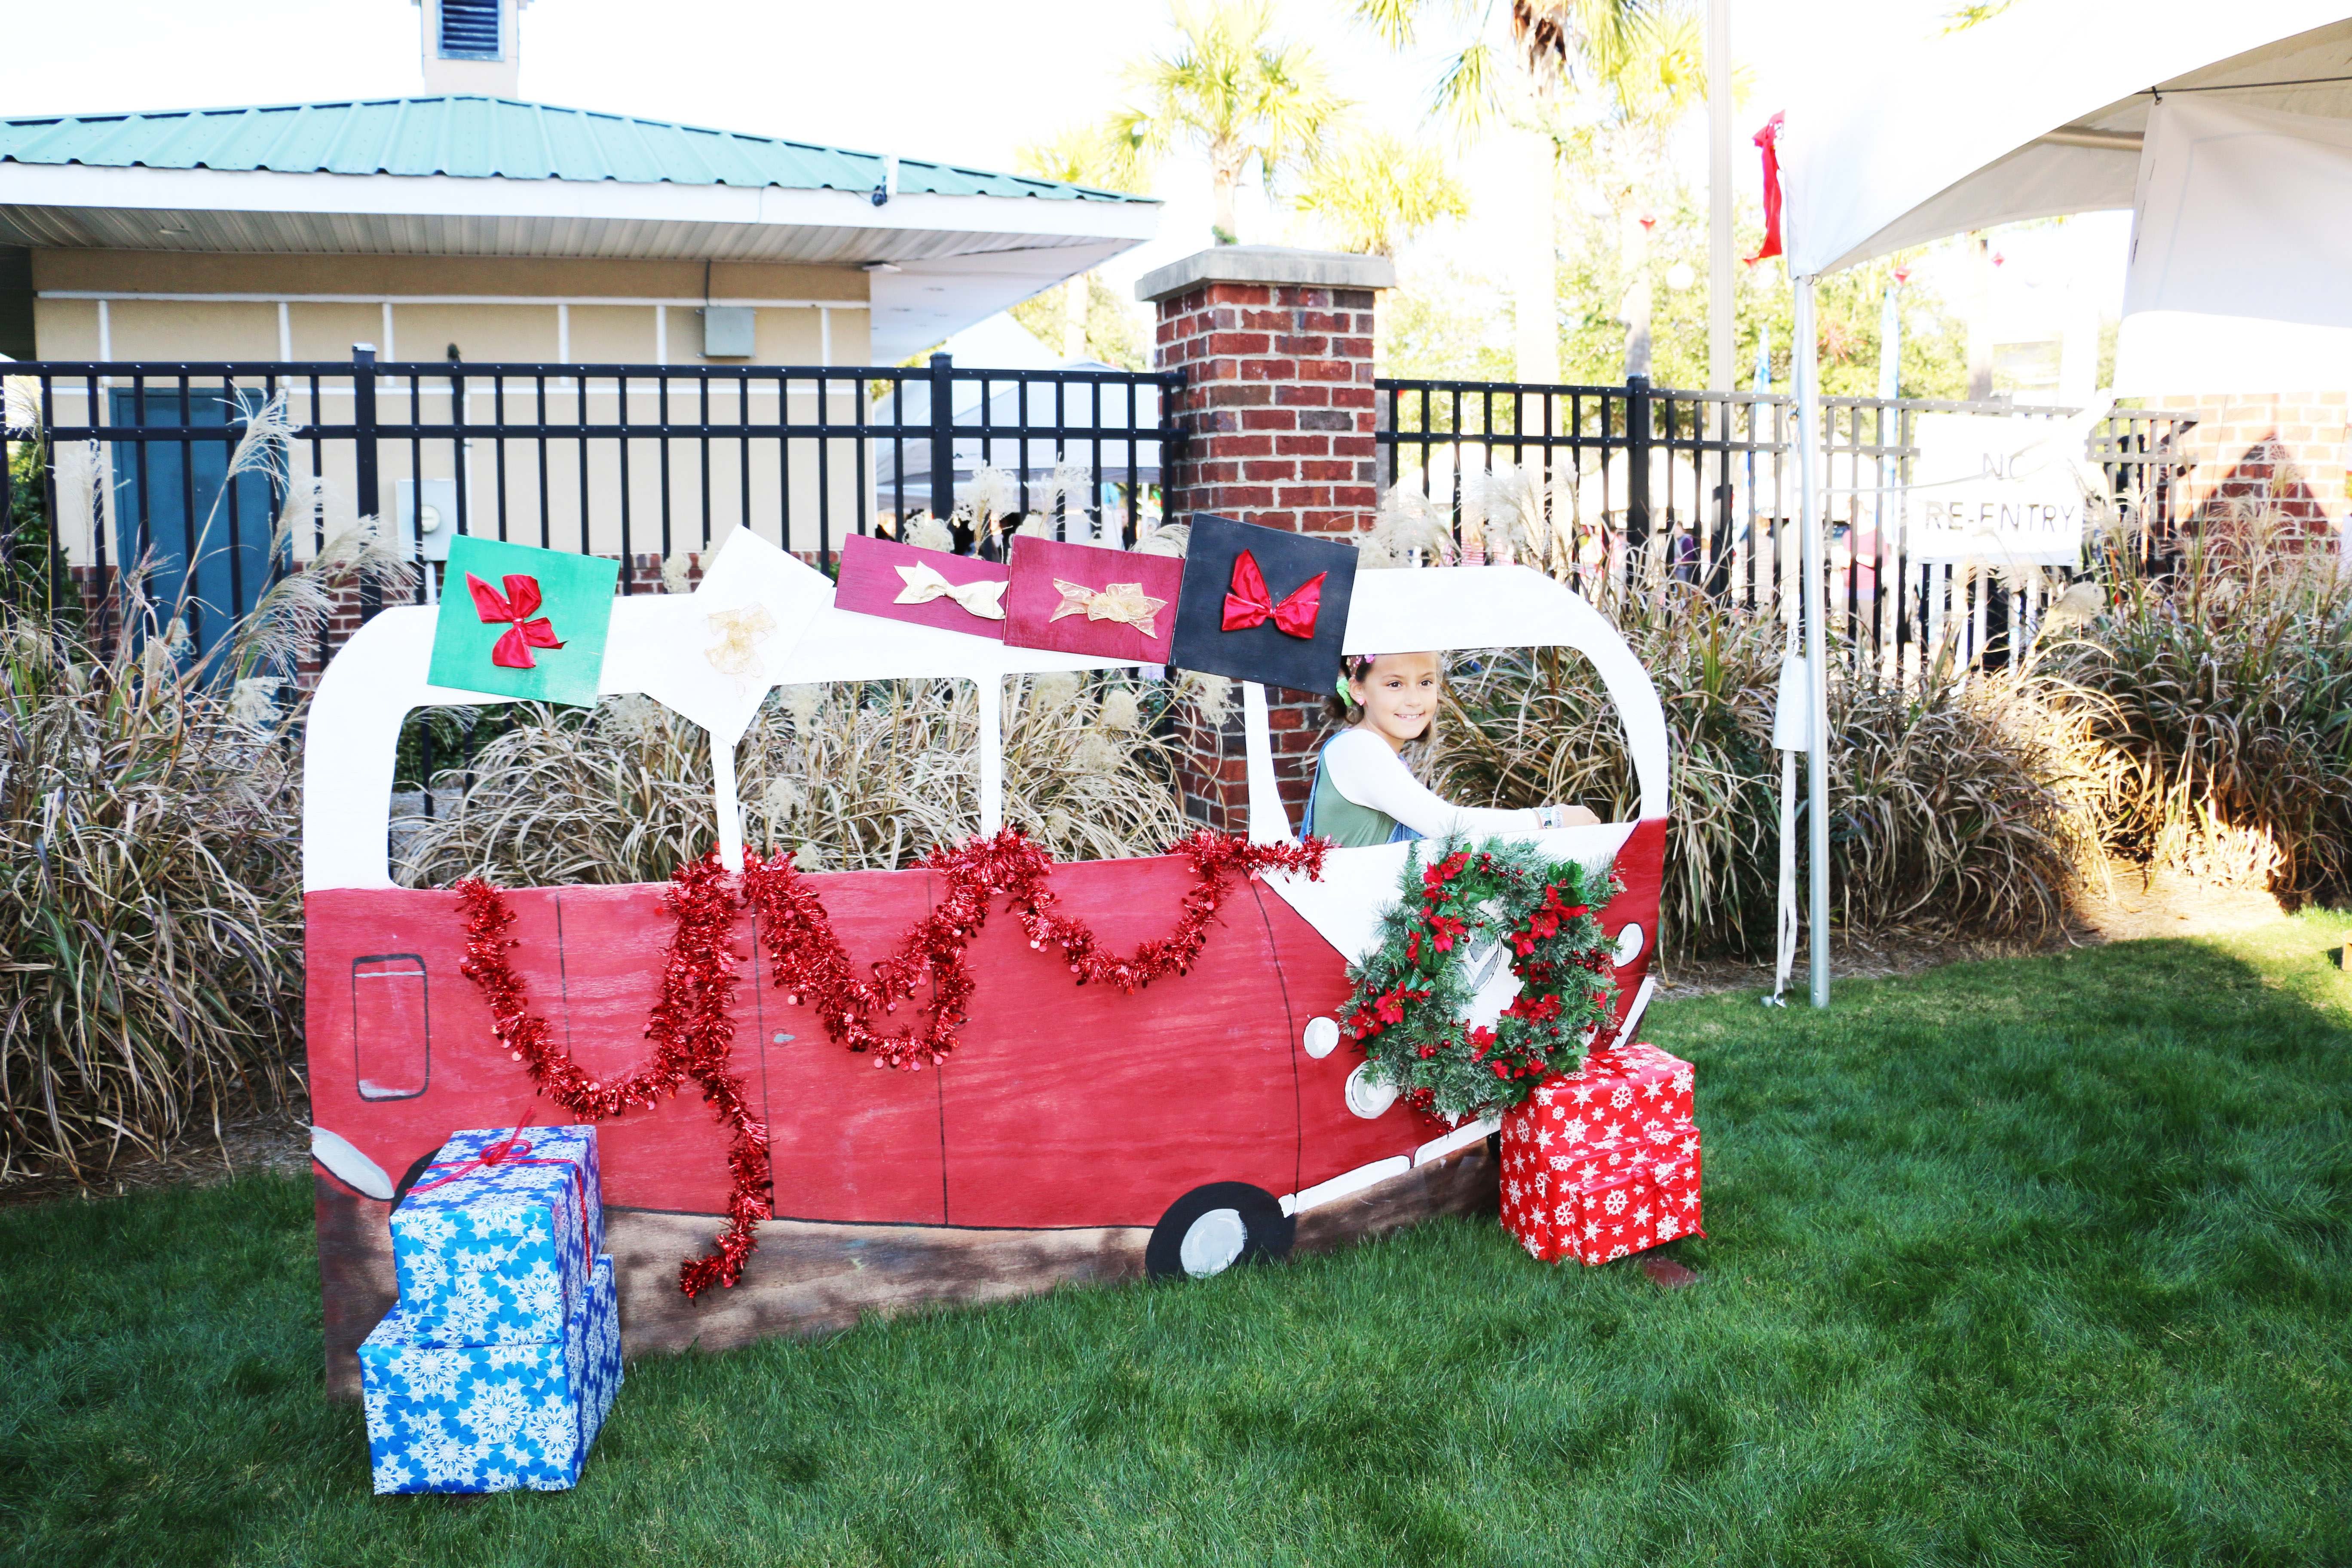 Rell, whose parents said she reads The Daniel Island News every week, poses for a picture with a holiday-inspired VW Bus.